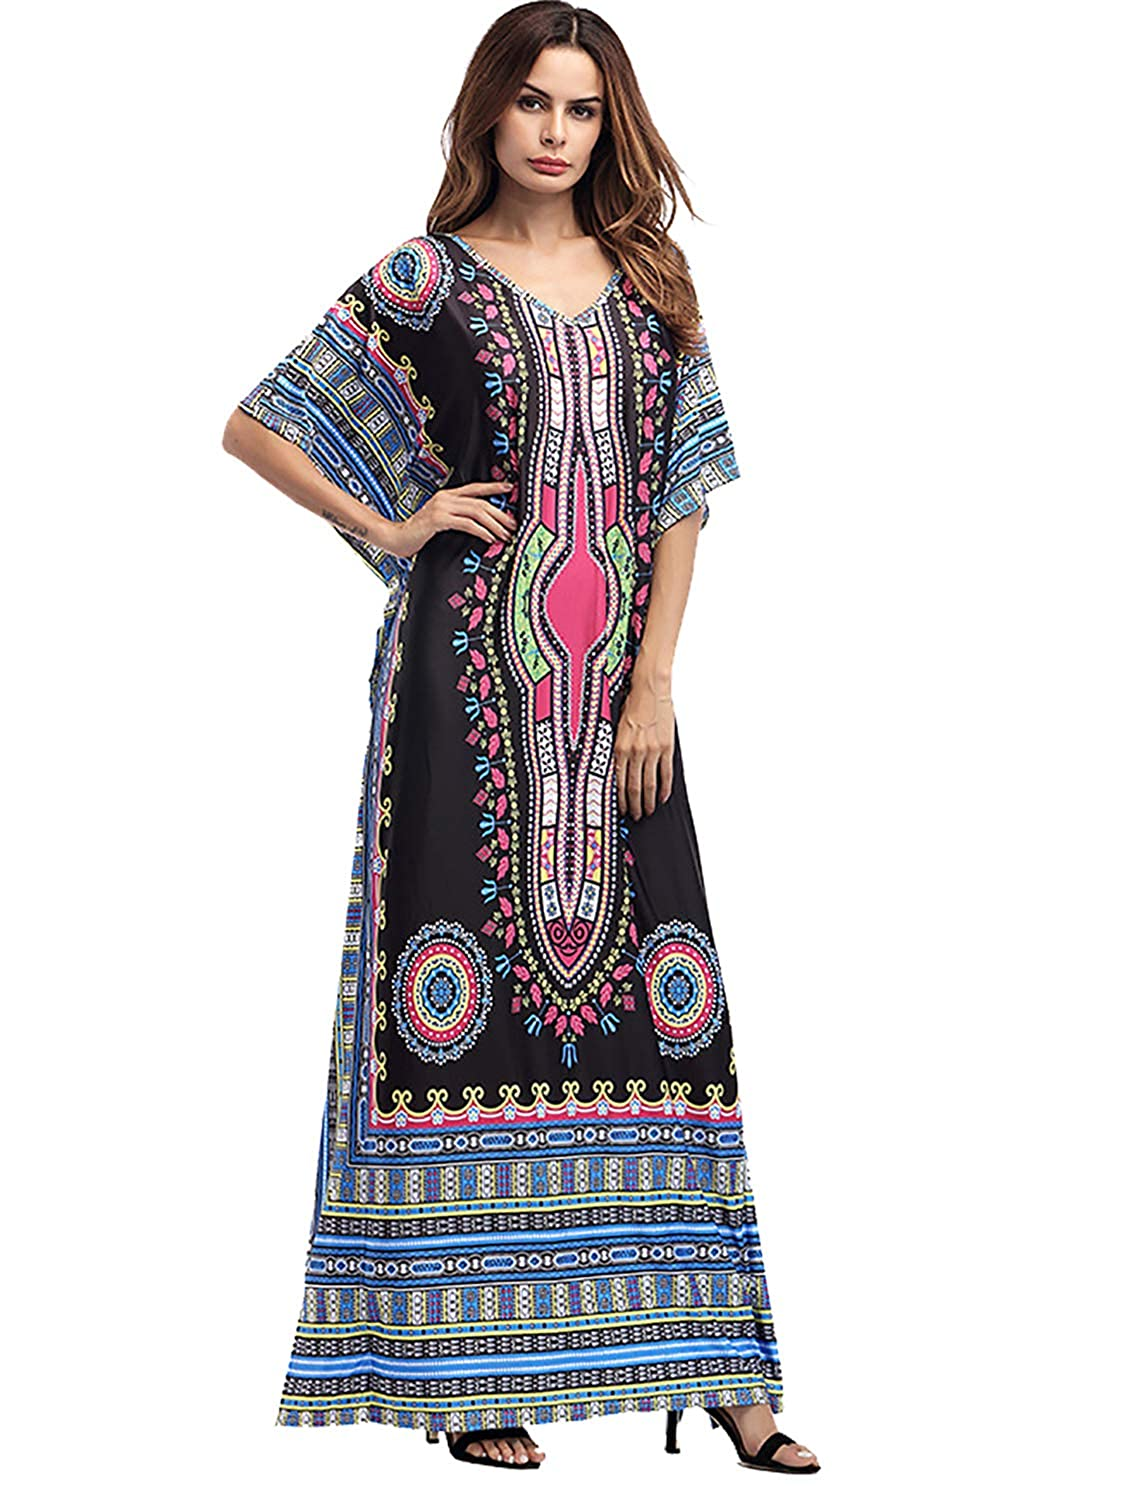 f7eb2d8ca2f Package  1 x Maxi Long Dress for women. African floral printed ethnic  style